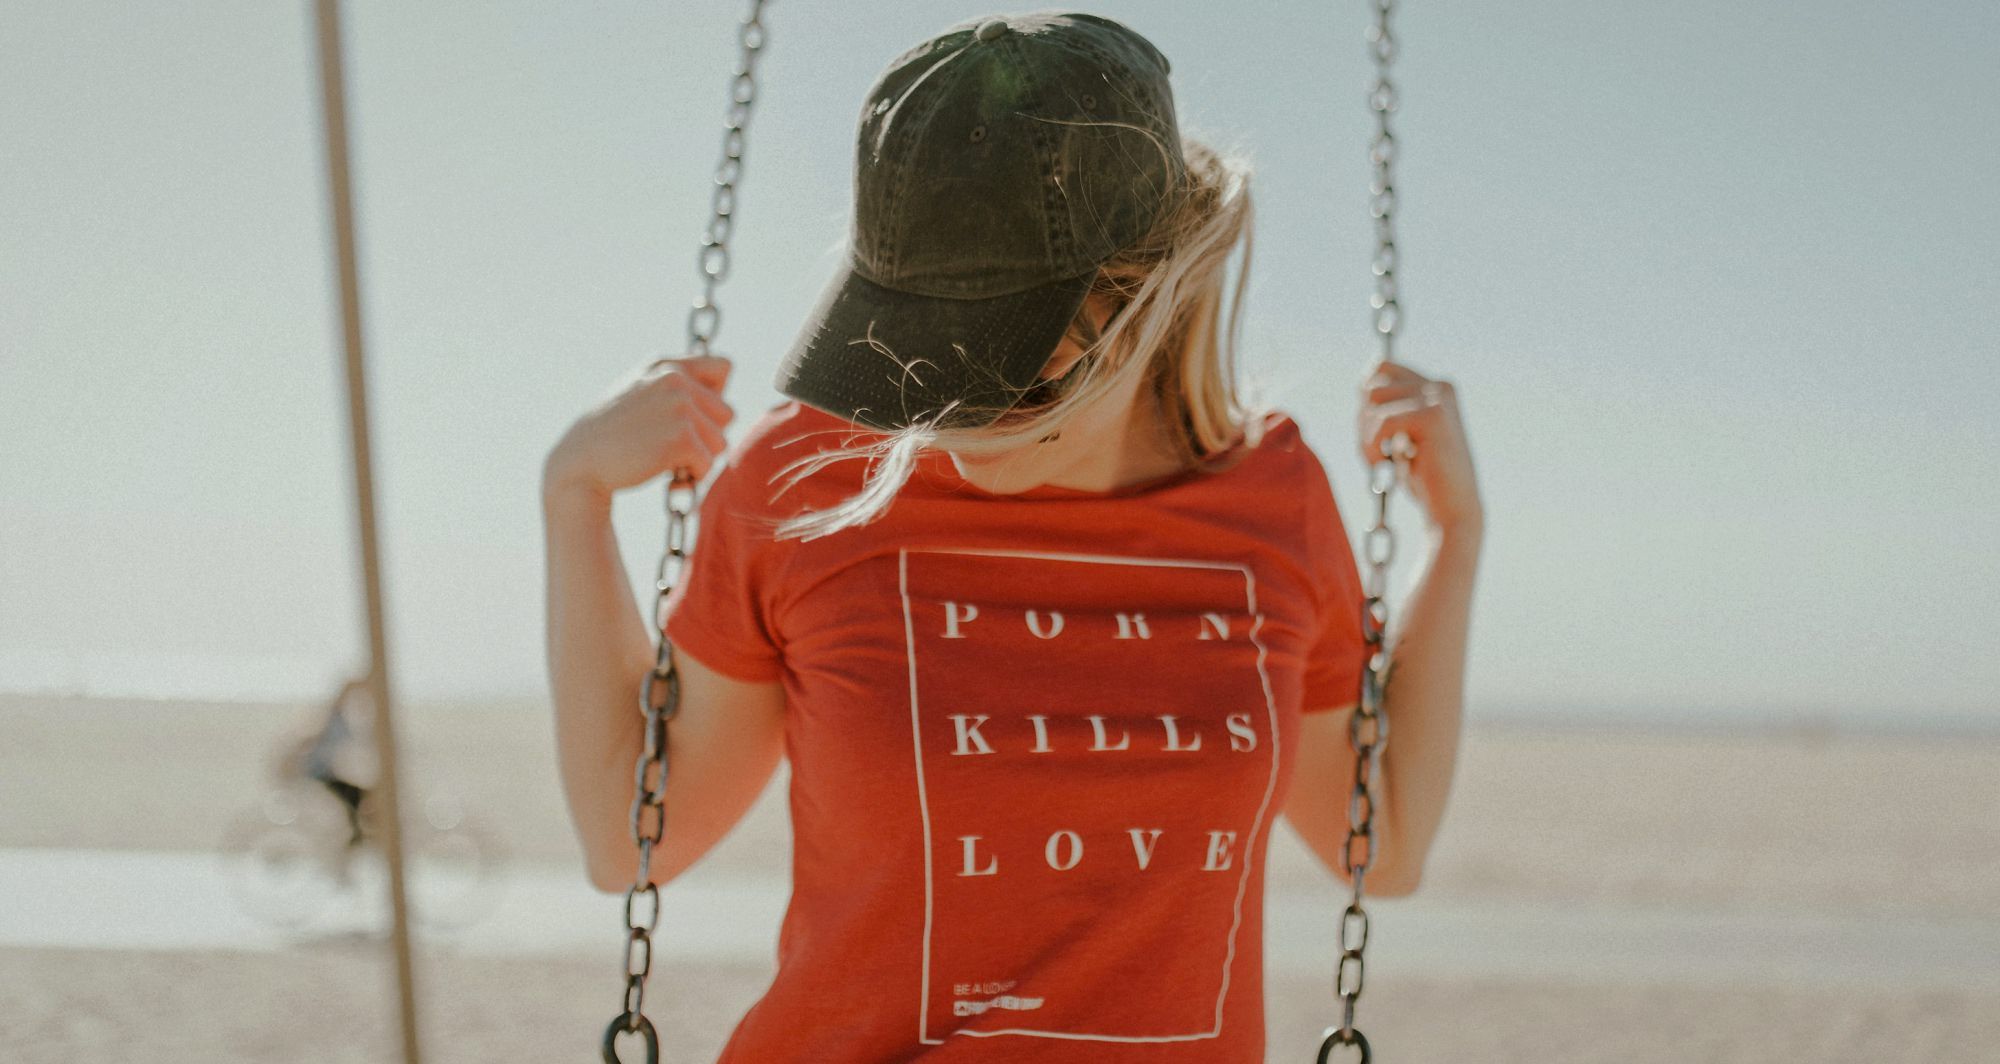 @leah_roach_ and Lacey Bee Photography @thelaceybee at Santa Monica CA Pier 2_science behind slogan porn kills love